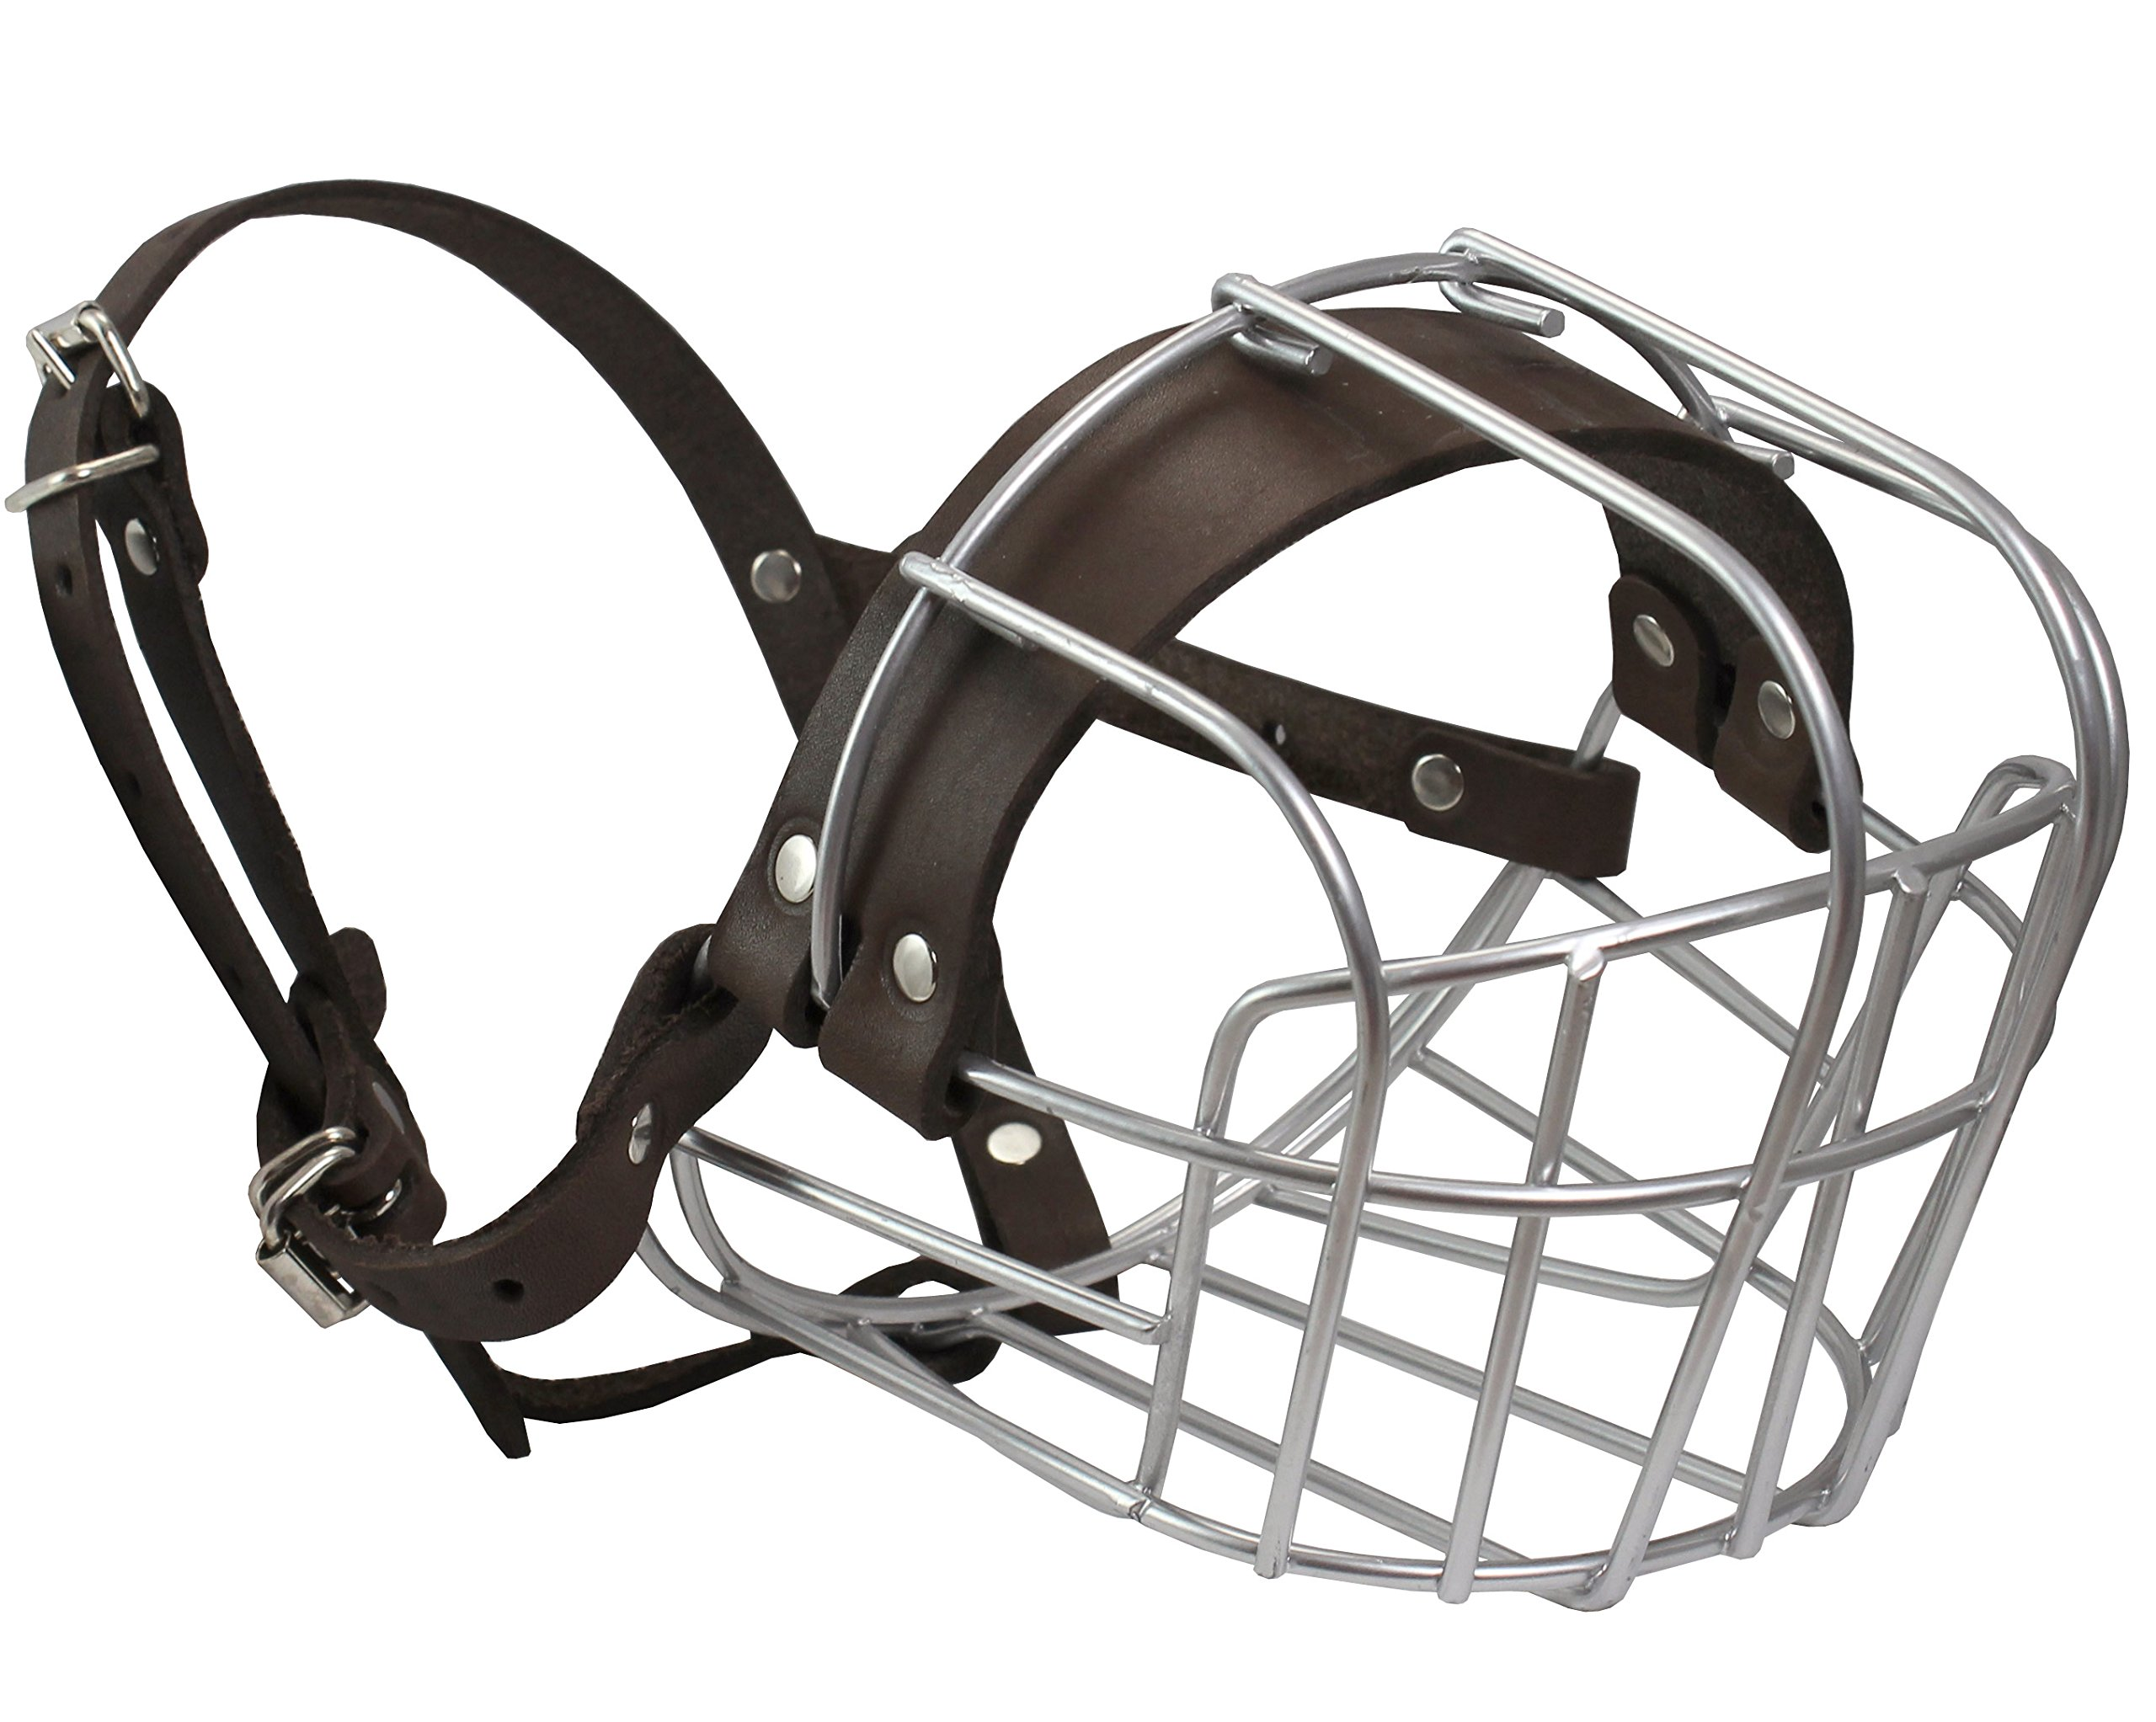 Dogs My Love Metal Wire Basket Dog Muzzle Rottweiler Large Male. Circumference 16.5'', Length 4.5''